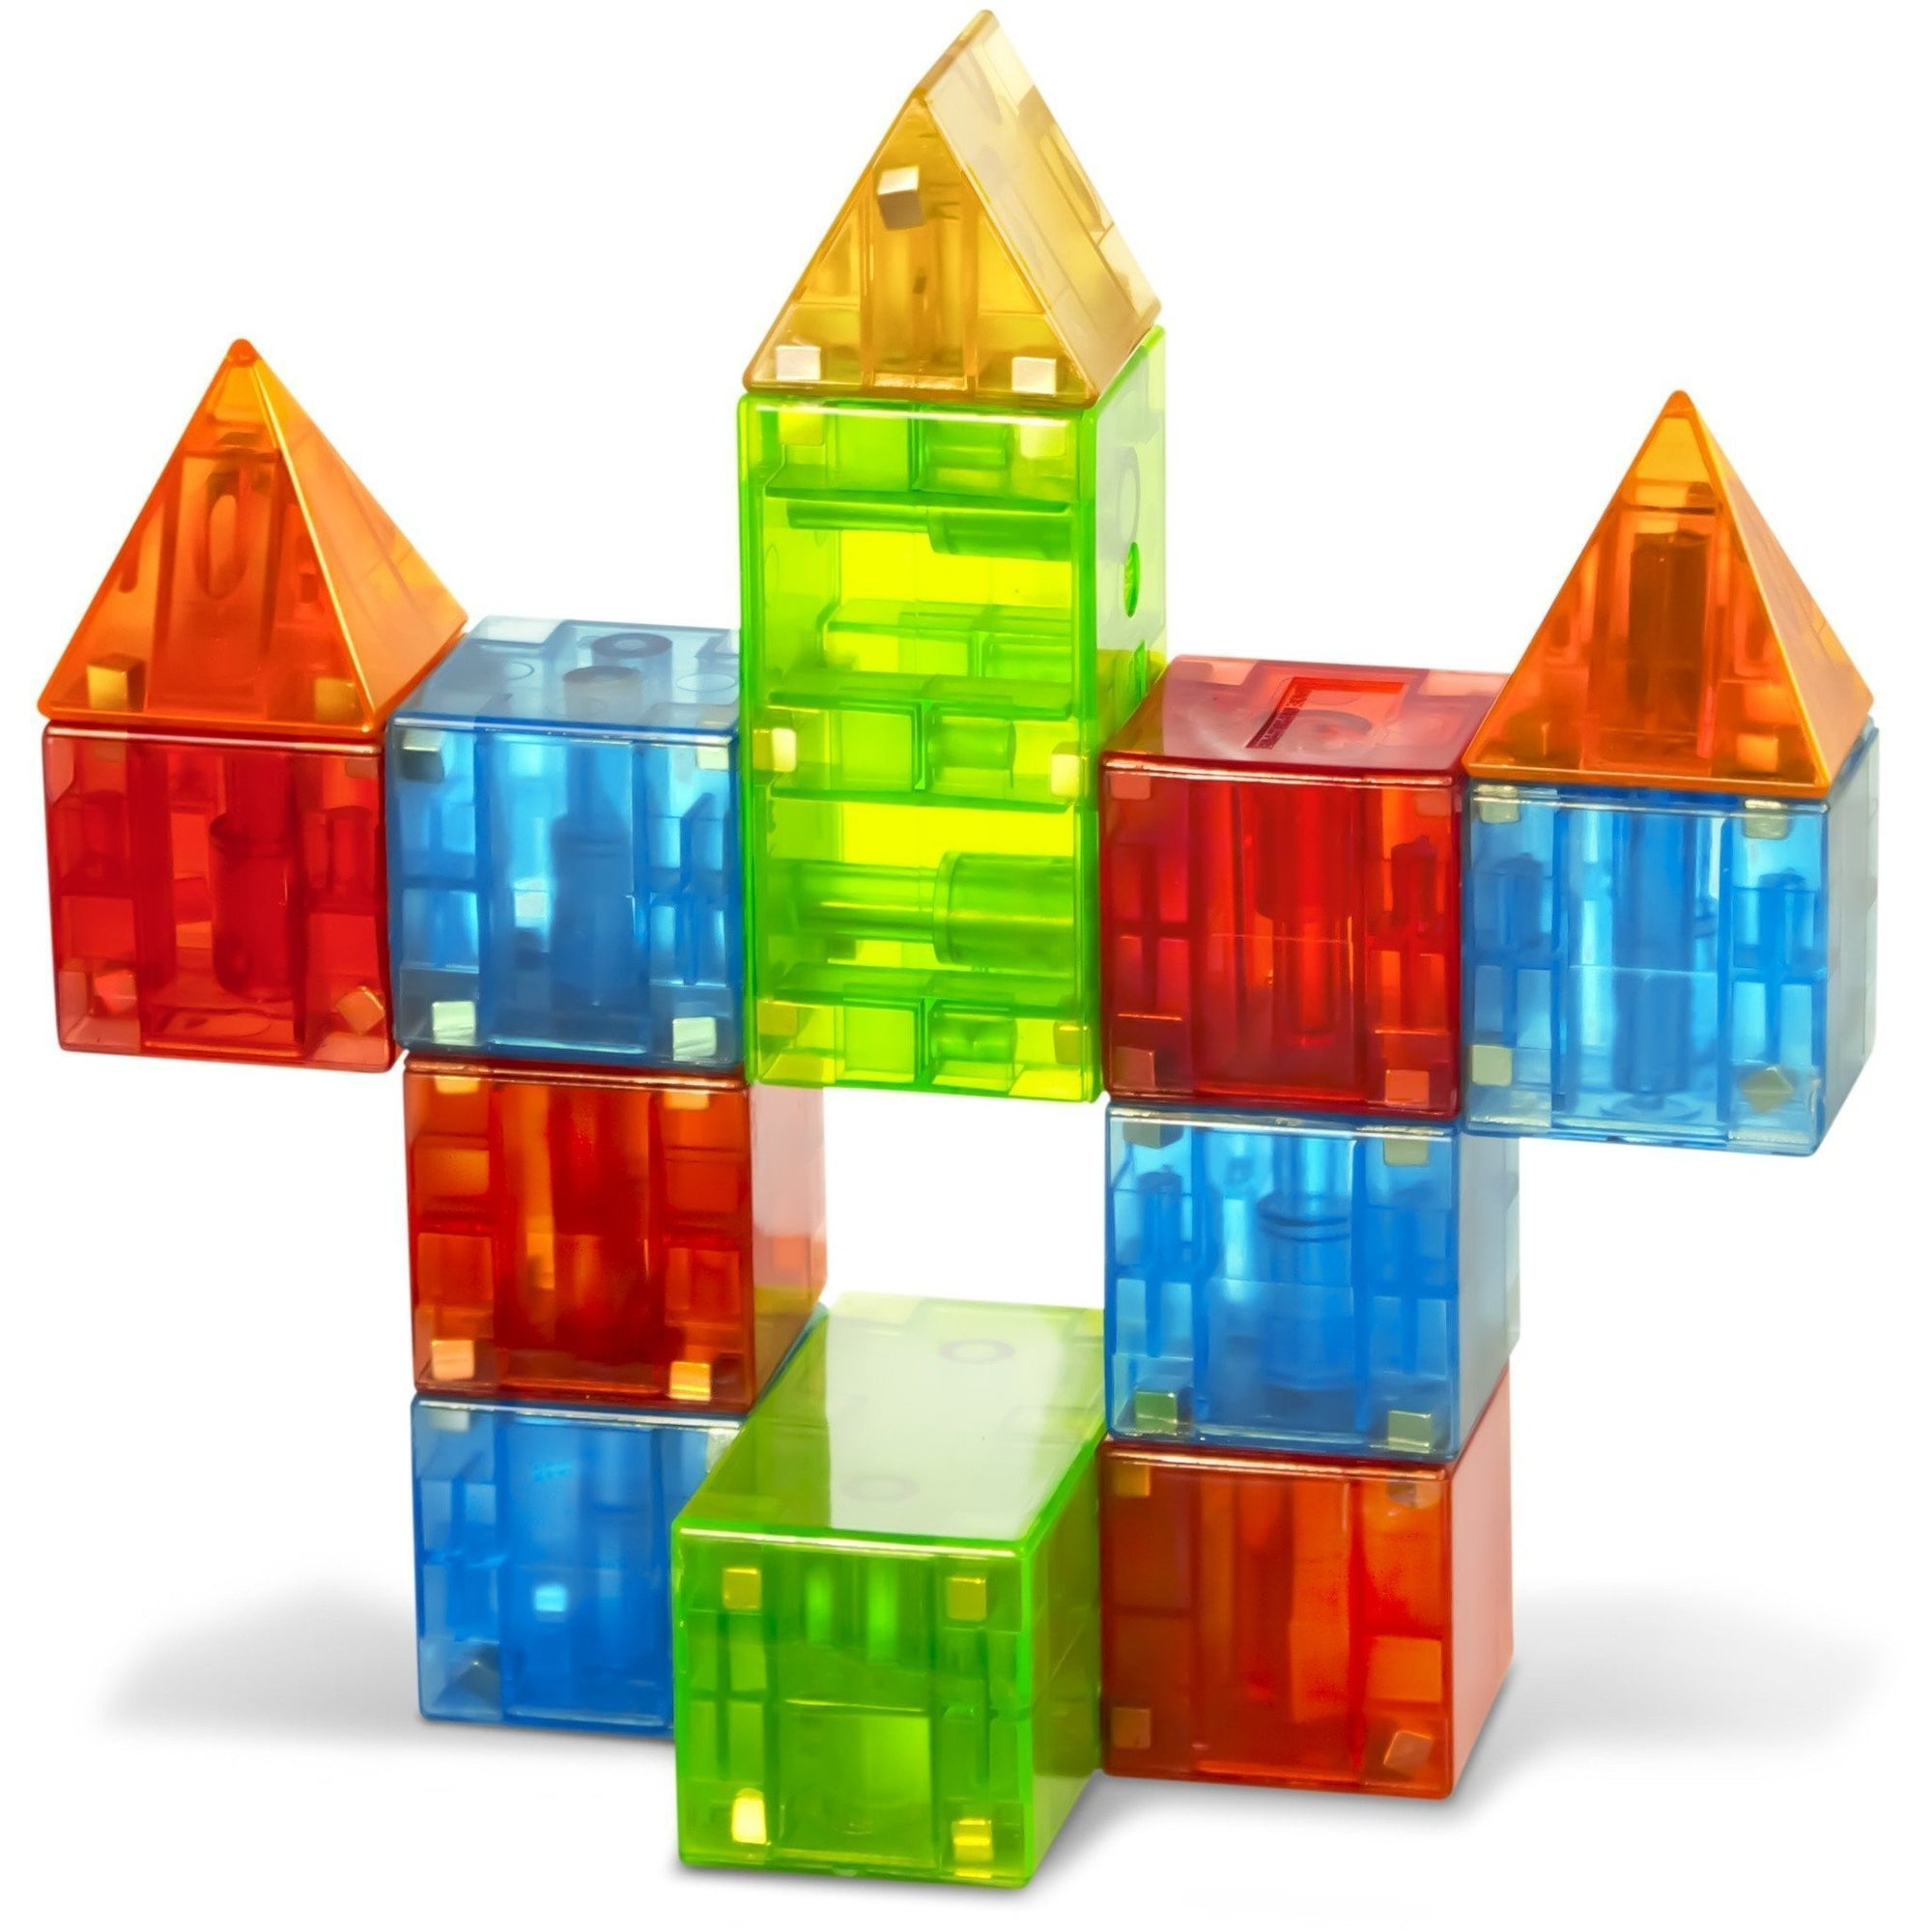 19 Piece Qubix Magna-Tiles - MagnaTiles - Hugs For Kids